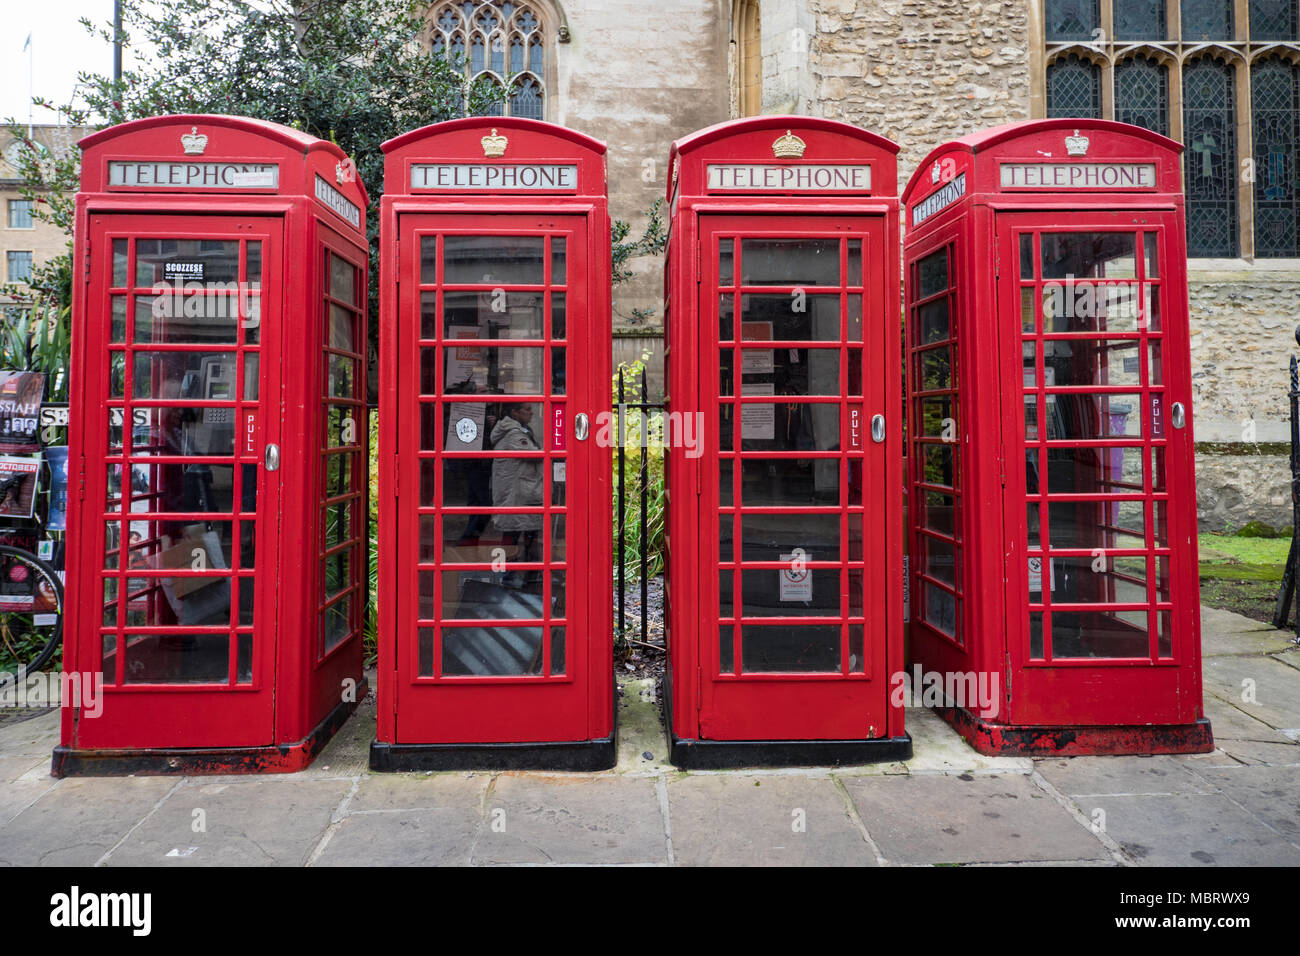 Four red telephone boxes in St. Mary's Passage in the university city of Cambridge England UK - Stock Image